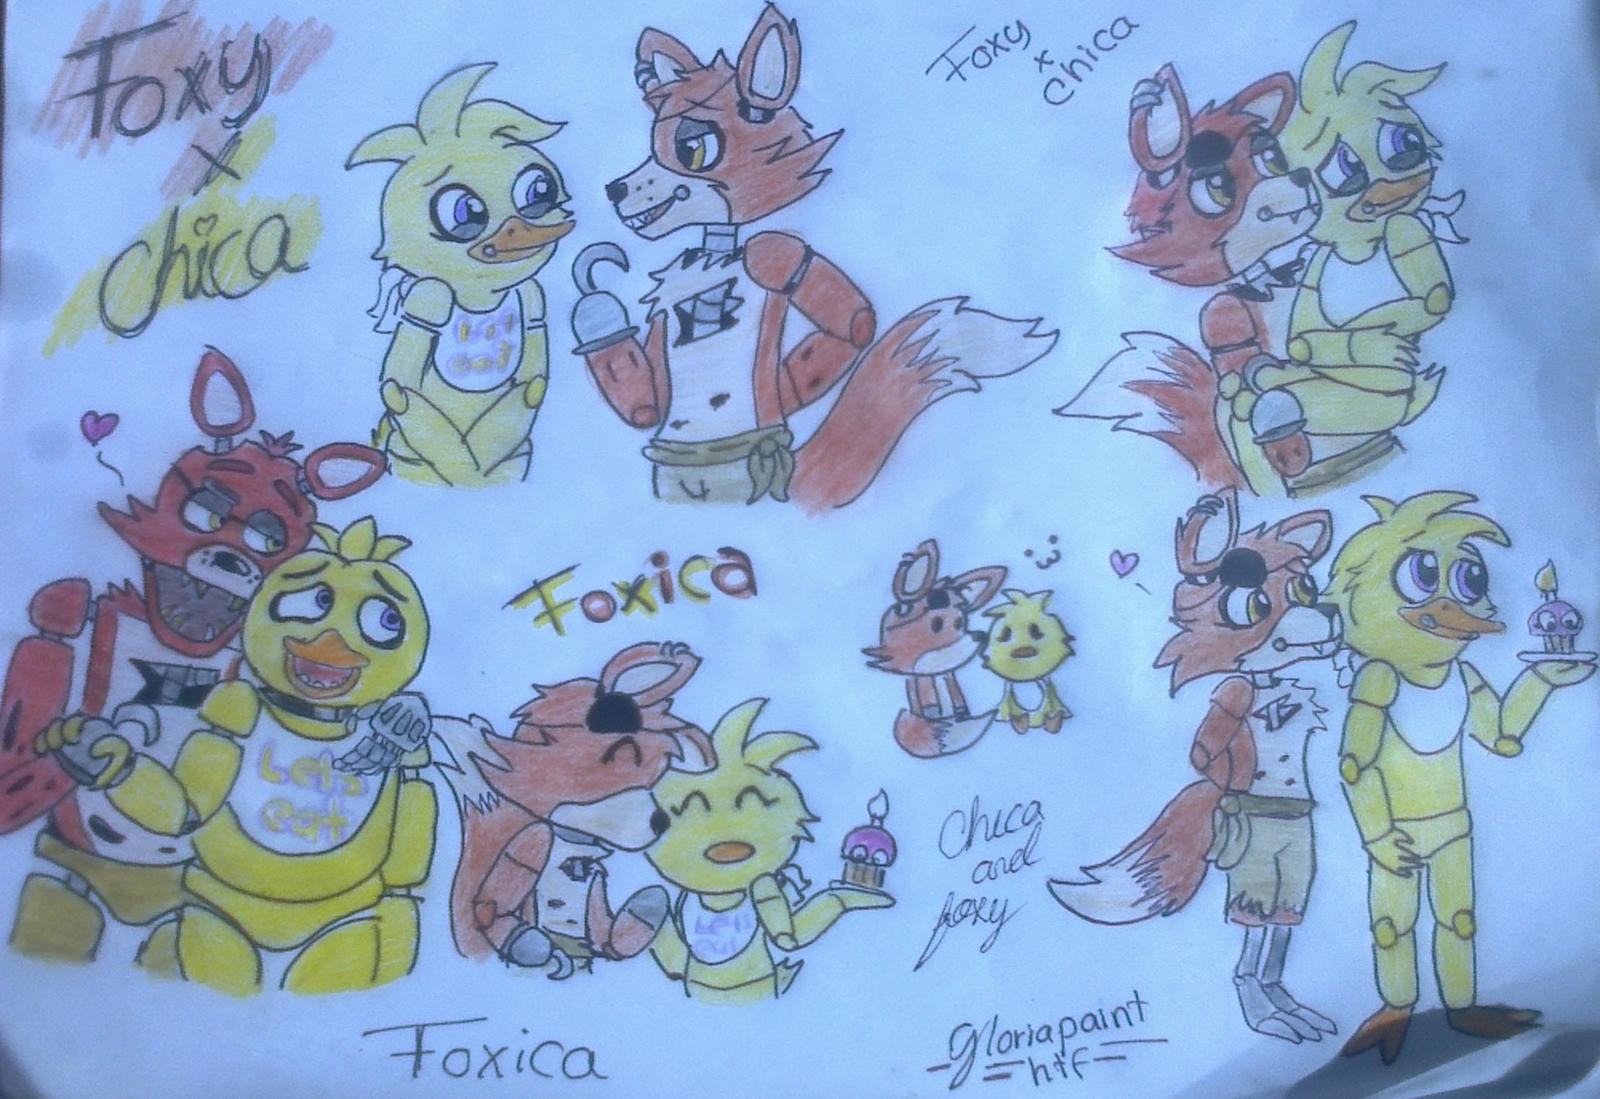 Foxy x chica doodles 3 by gloriapainthtf on deviantart